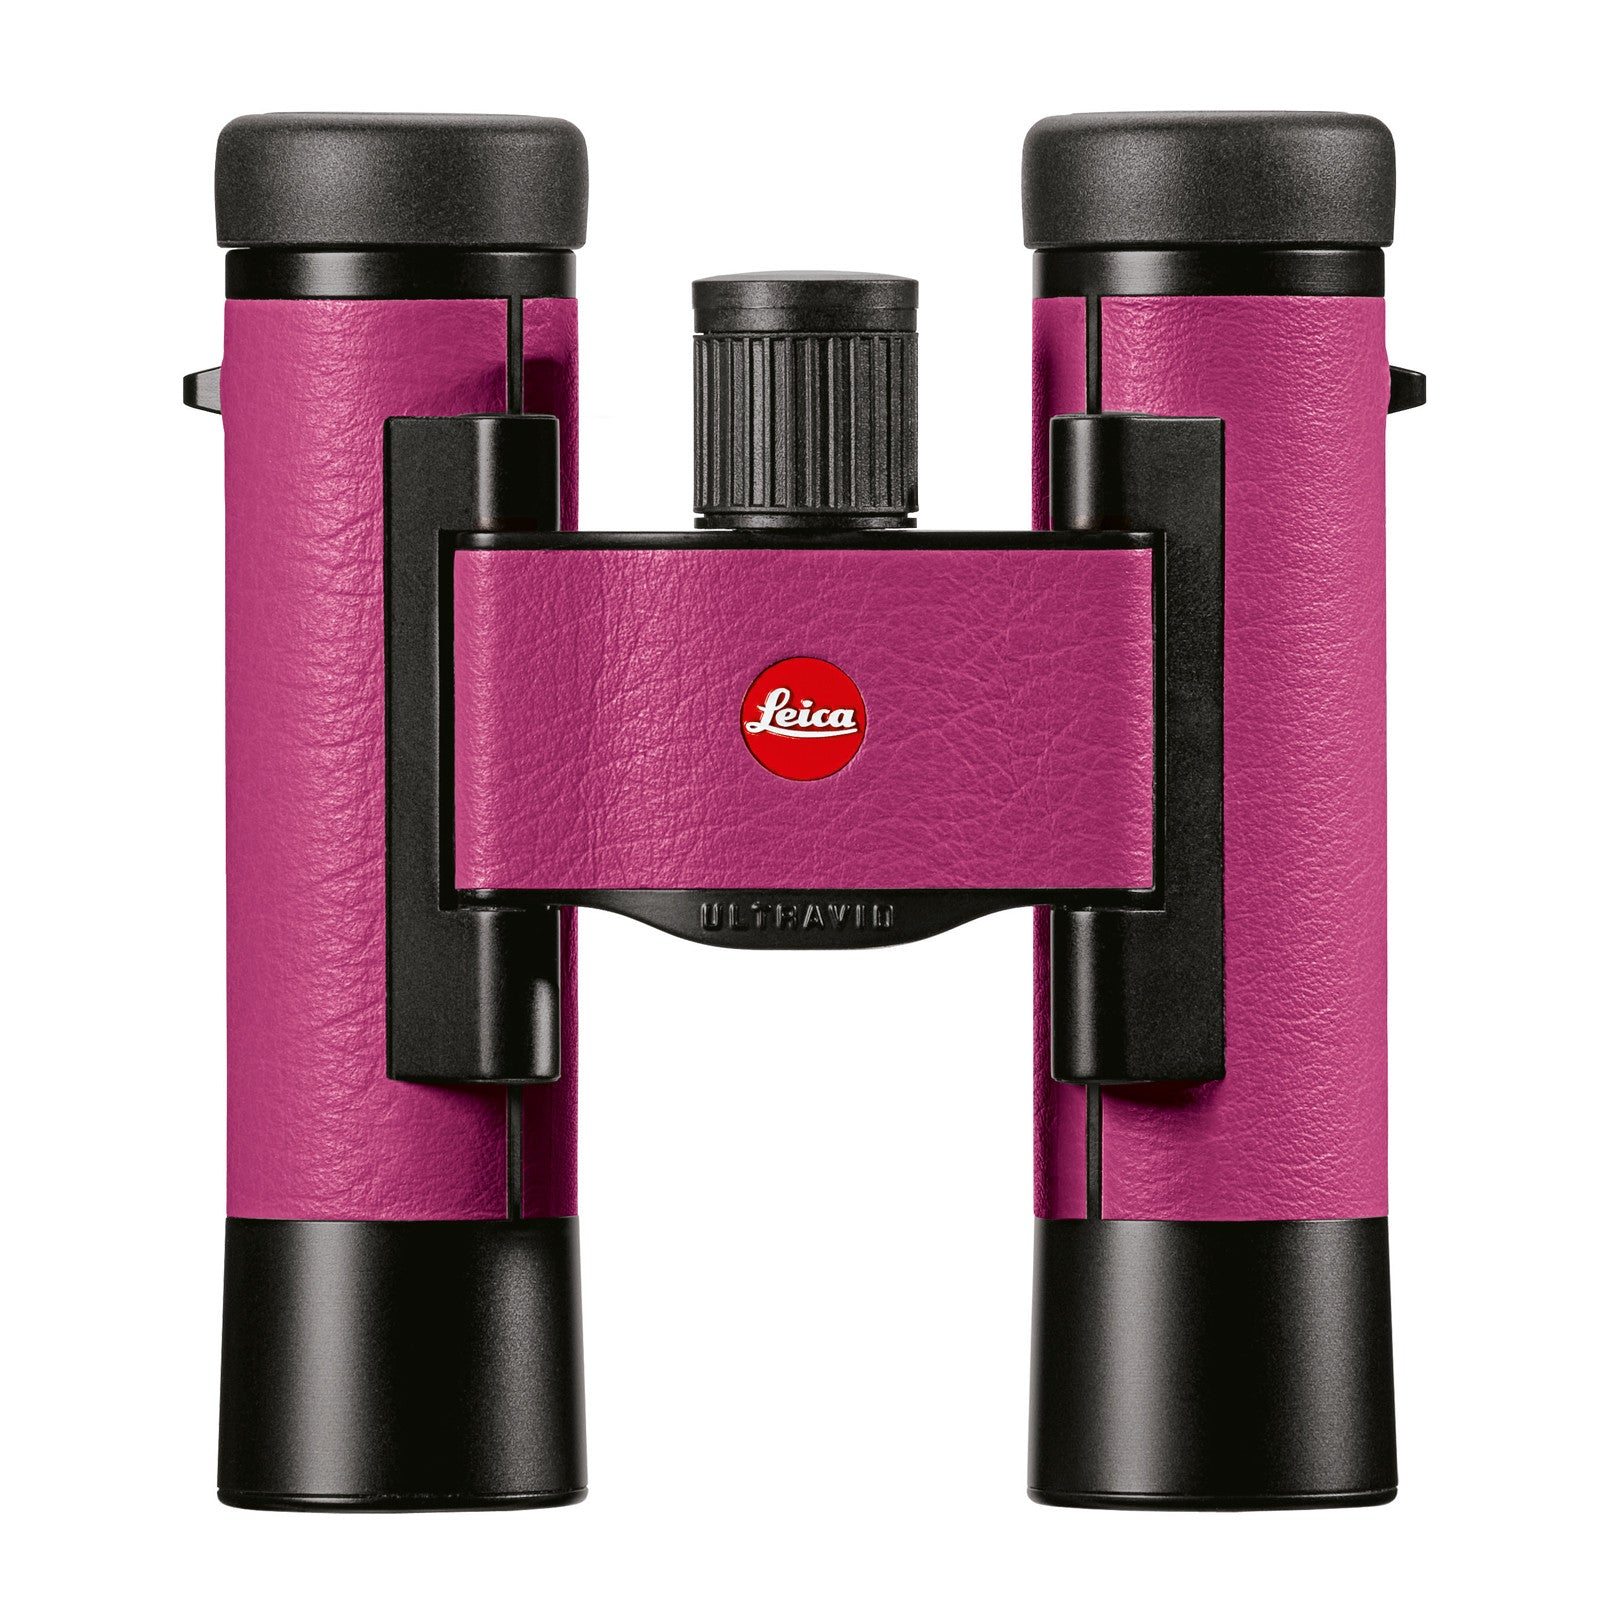 Leica Ultravid Colorline 10 x 25 Binocular - Cherry Pink